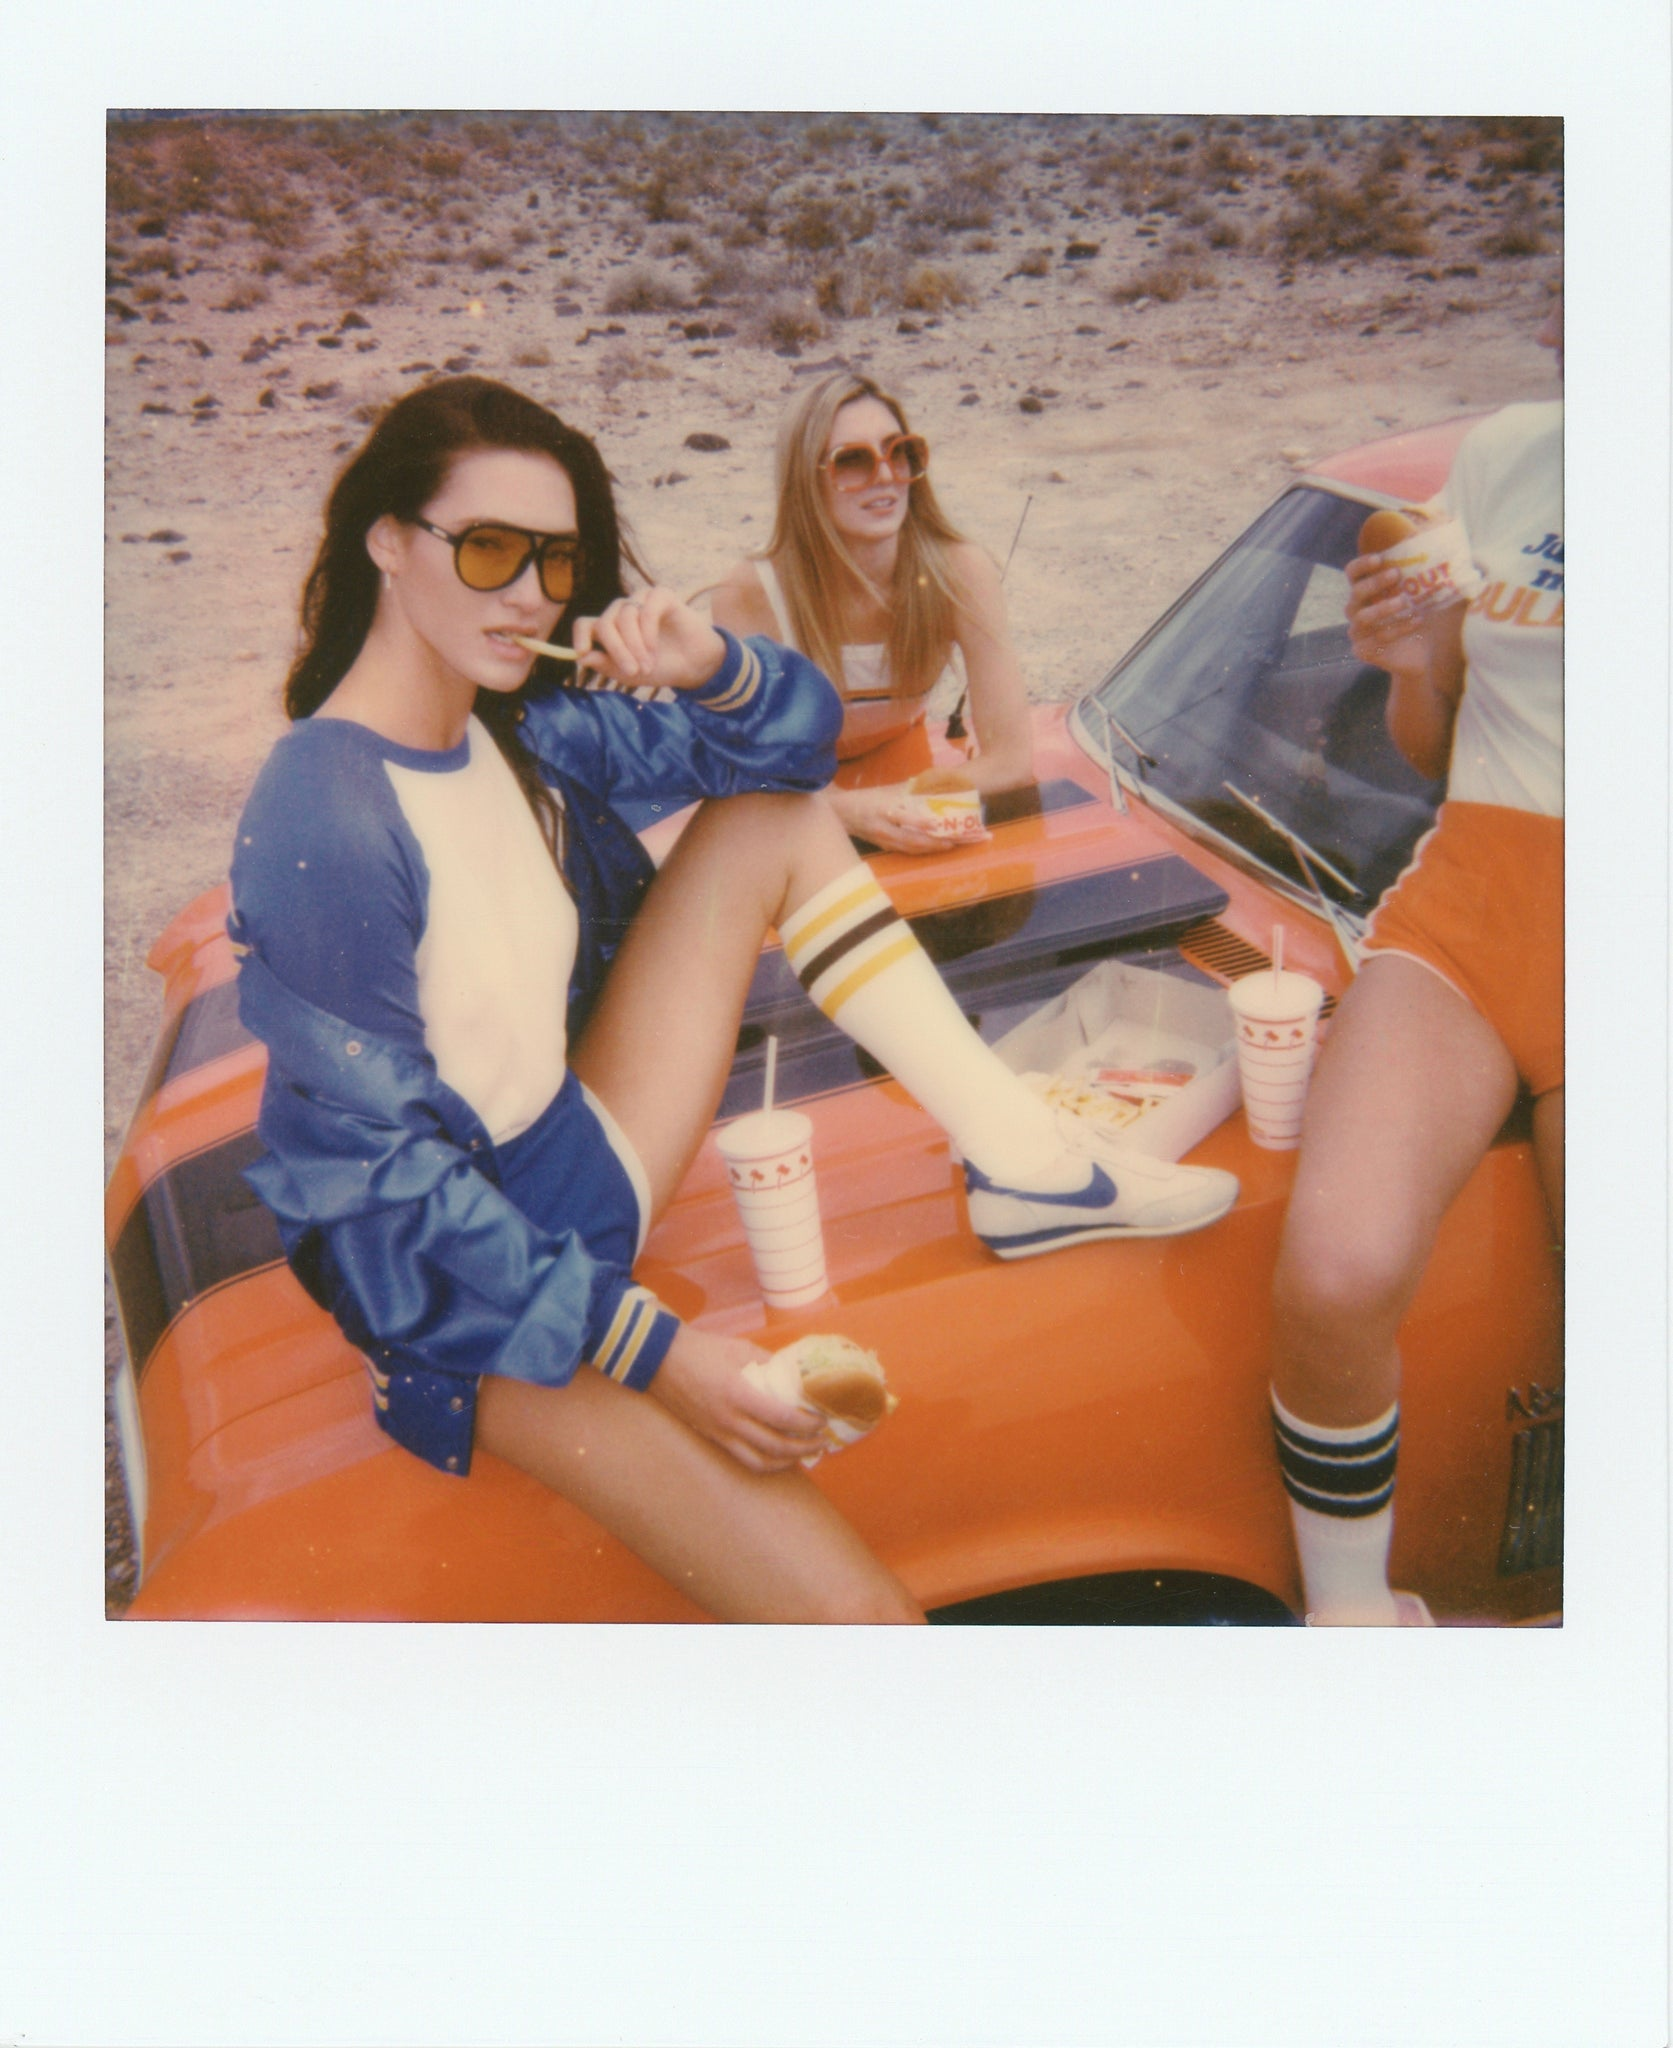 Brooke Olimpieri - Work - Polaroid - Photo 3